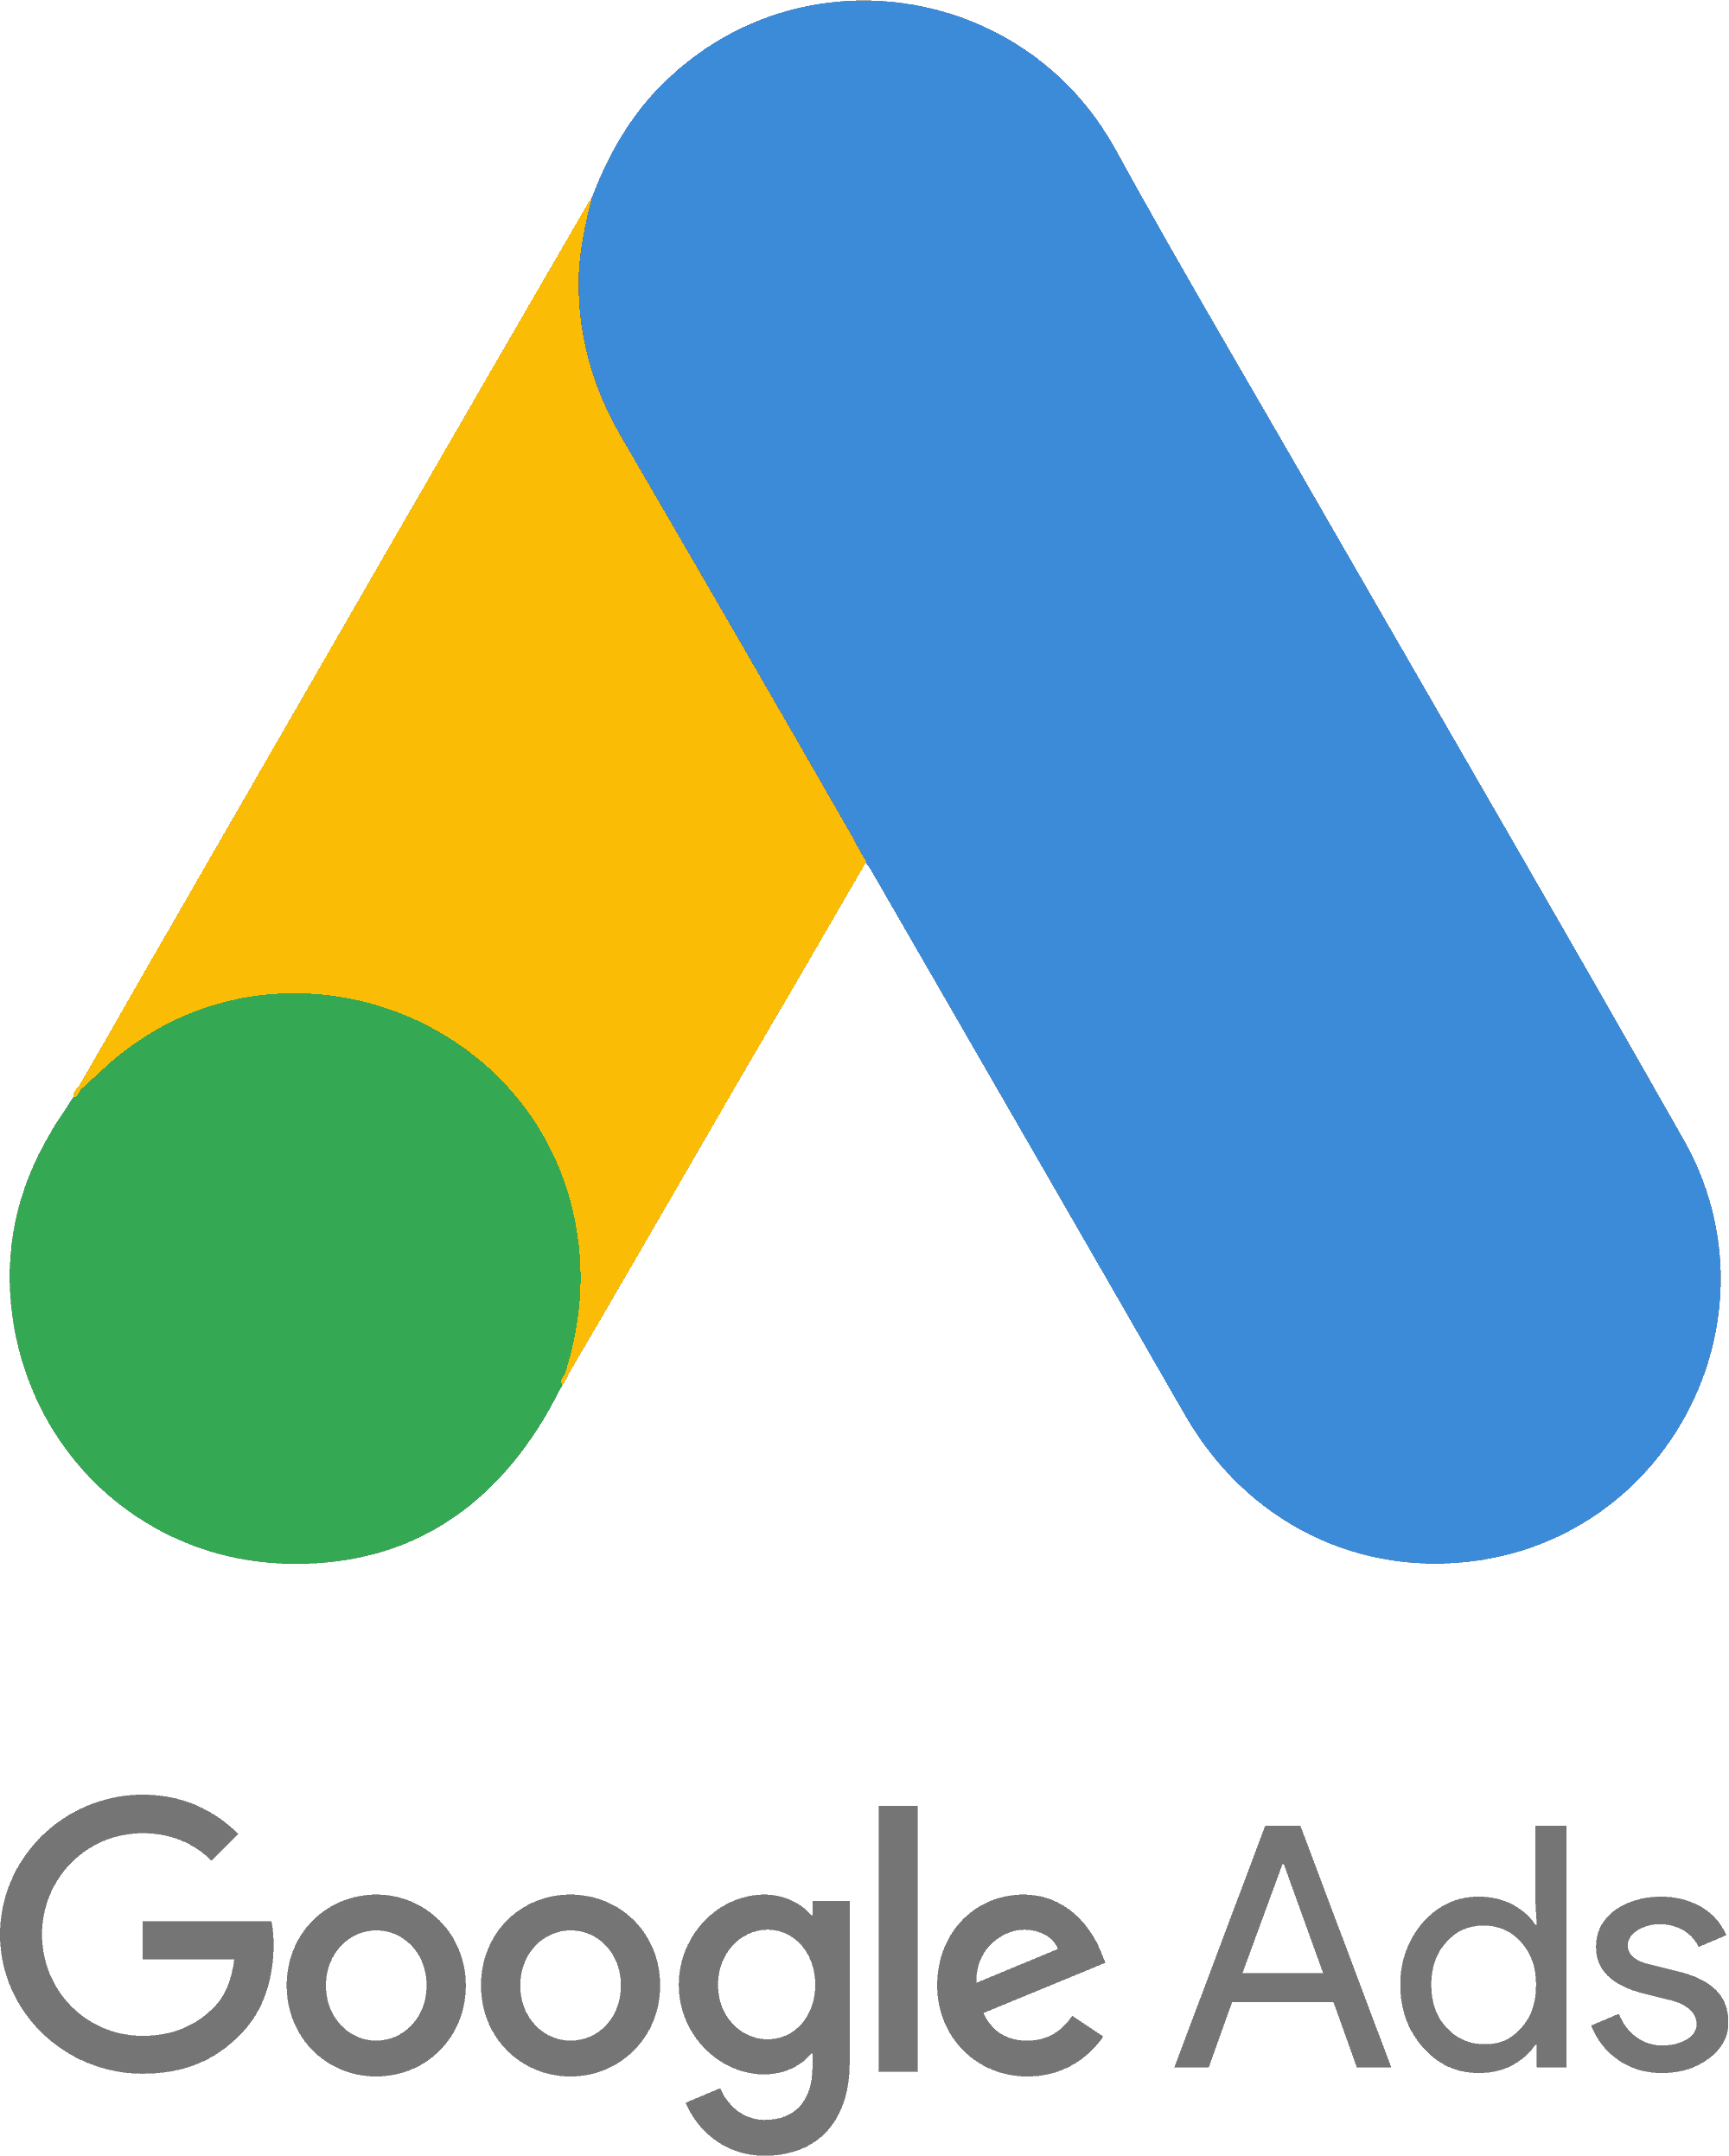 an image of the Google Ads logo